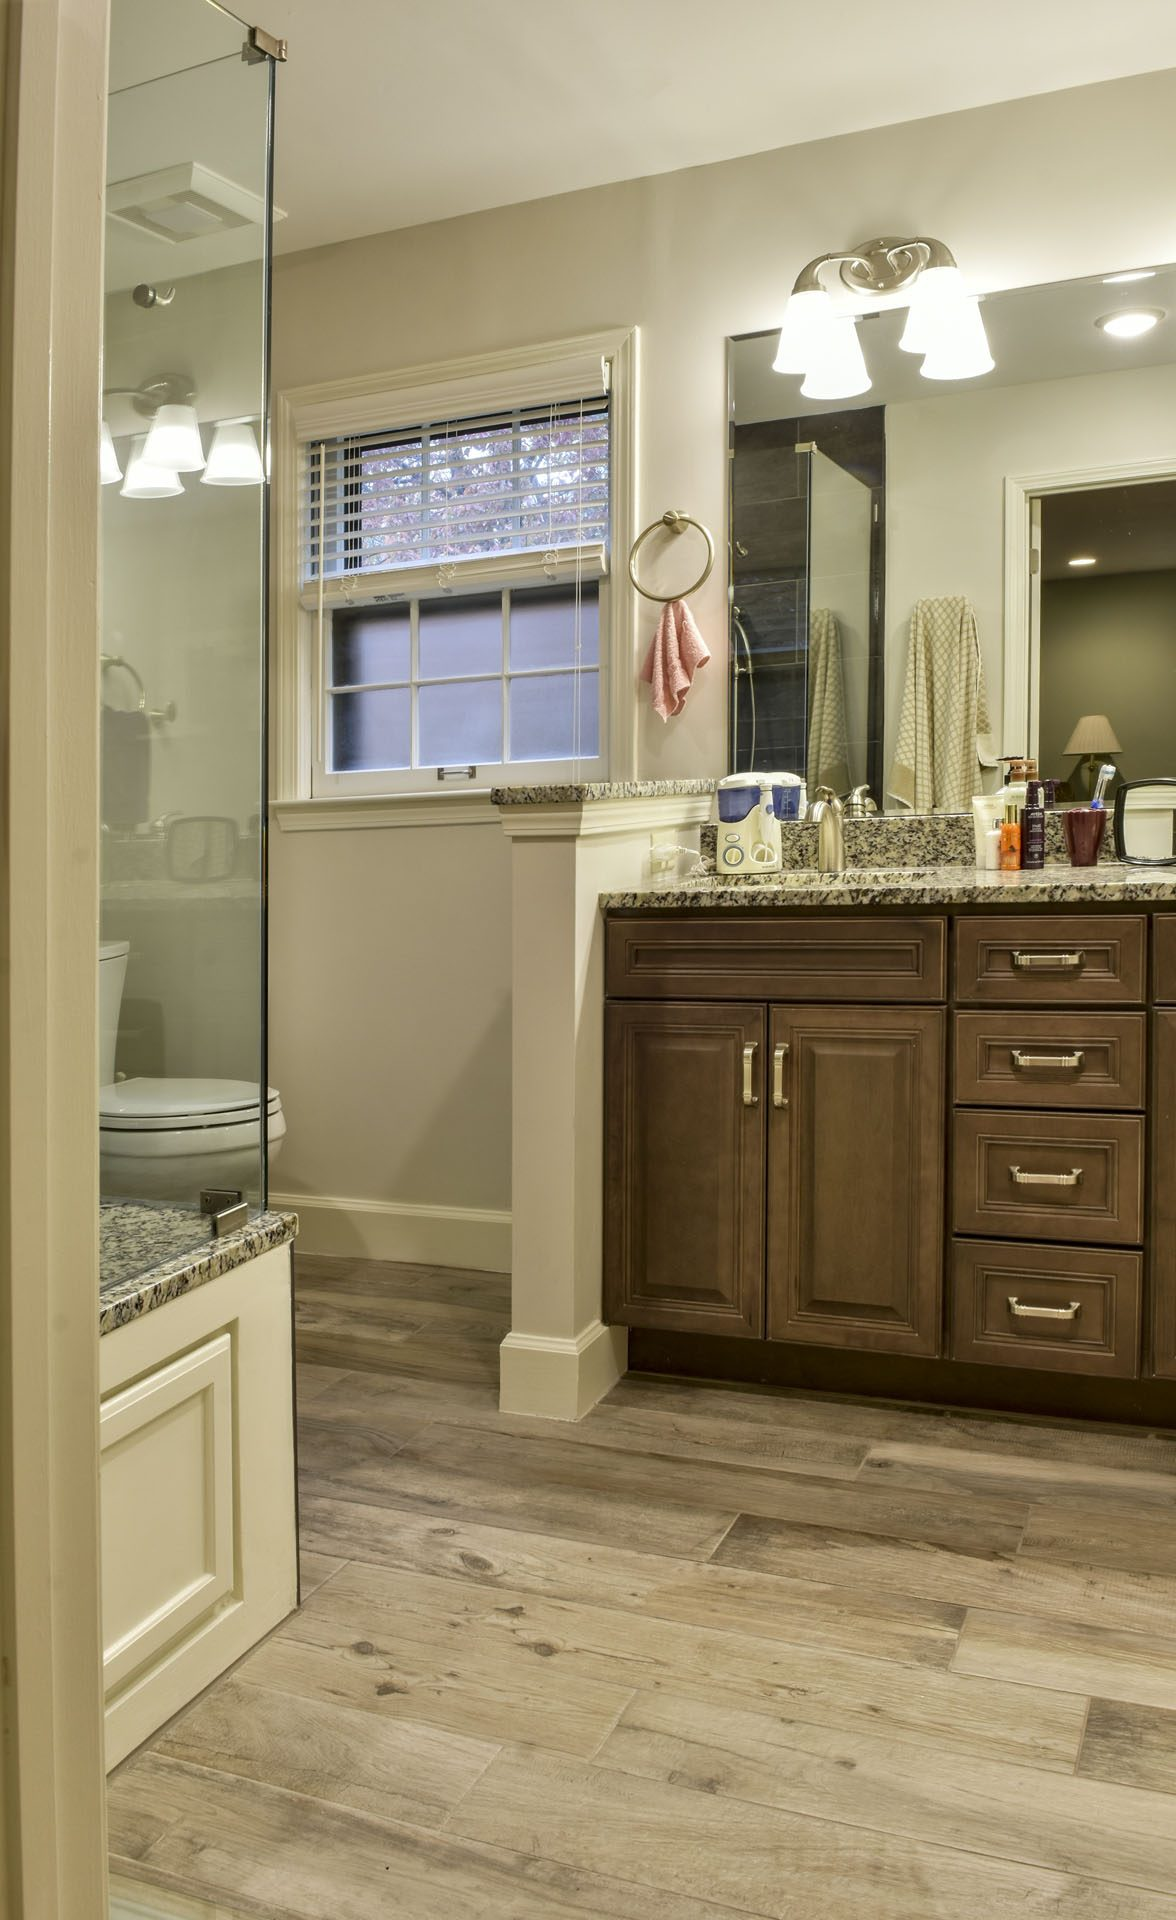 Louisville Kentucky Master Bath Renovation, Luxury Vinyl Tile, Glassed-in Shower, Charcoal Tile, Shower Bench, Multiple Shower Heads, Waterfall Basket Weave Shower Tile, Double Sink, Granite Vanity Top, Brushed Nickel Finishes